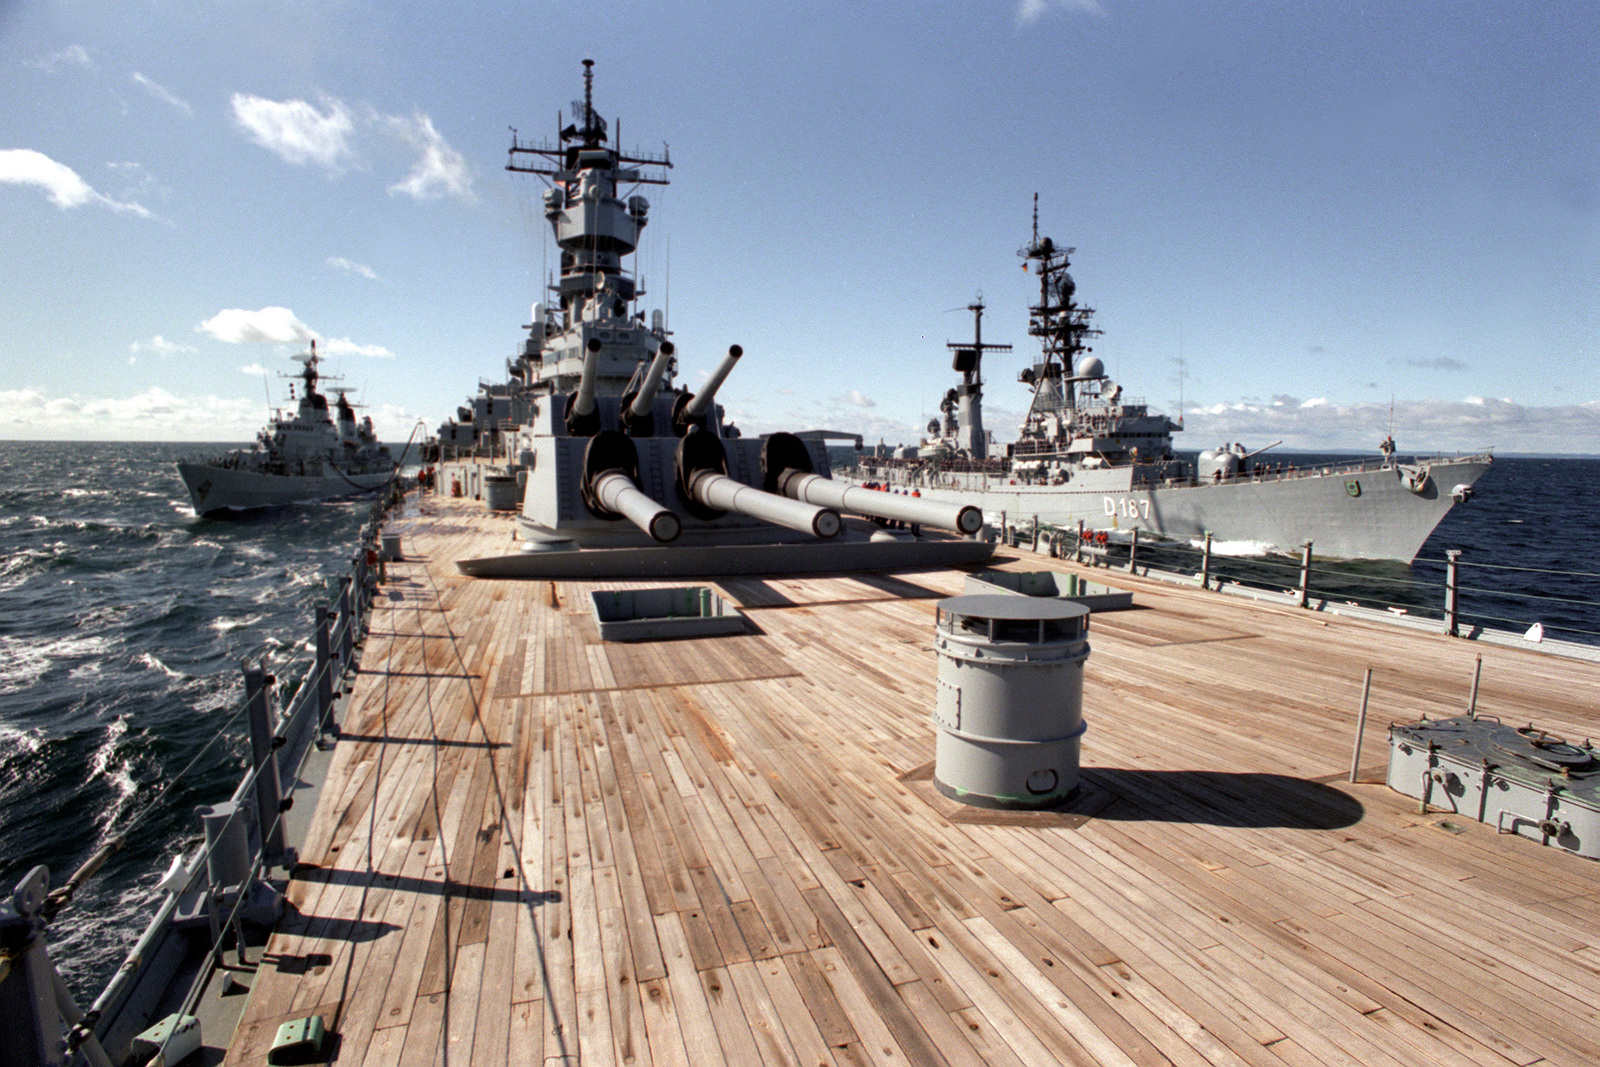 The battleship USS IOWA (BB-61) refuels the German destroyer FGS ROMMEL (D-187) on the port side and the Dutch frigate HDMS PEDER SKRAM (F-352) on the starboard side during operation Northern Wedding. This is the first time the IOWA has provided simultaneous services to two ships since her third commissioning in 1984